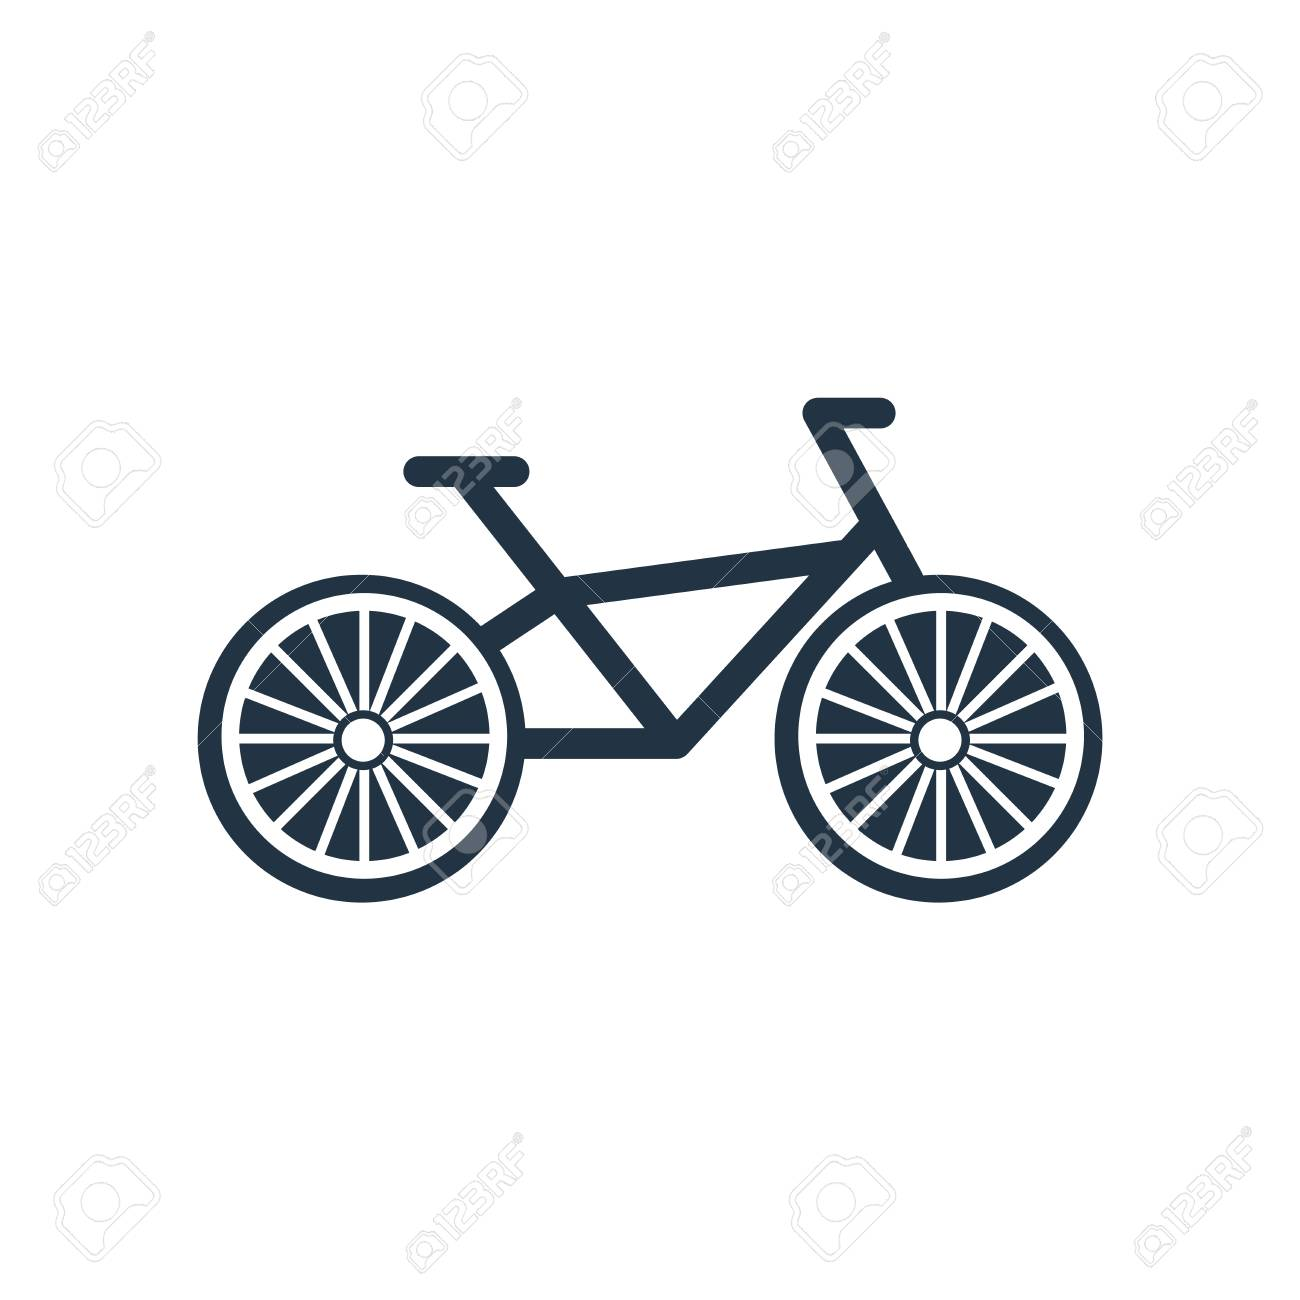 Bicycle Icon Vector Isolated On White Background Bicycle Transparent Royalty Free Cliparts Vectors And Stock Illustration Image 111895886